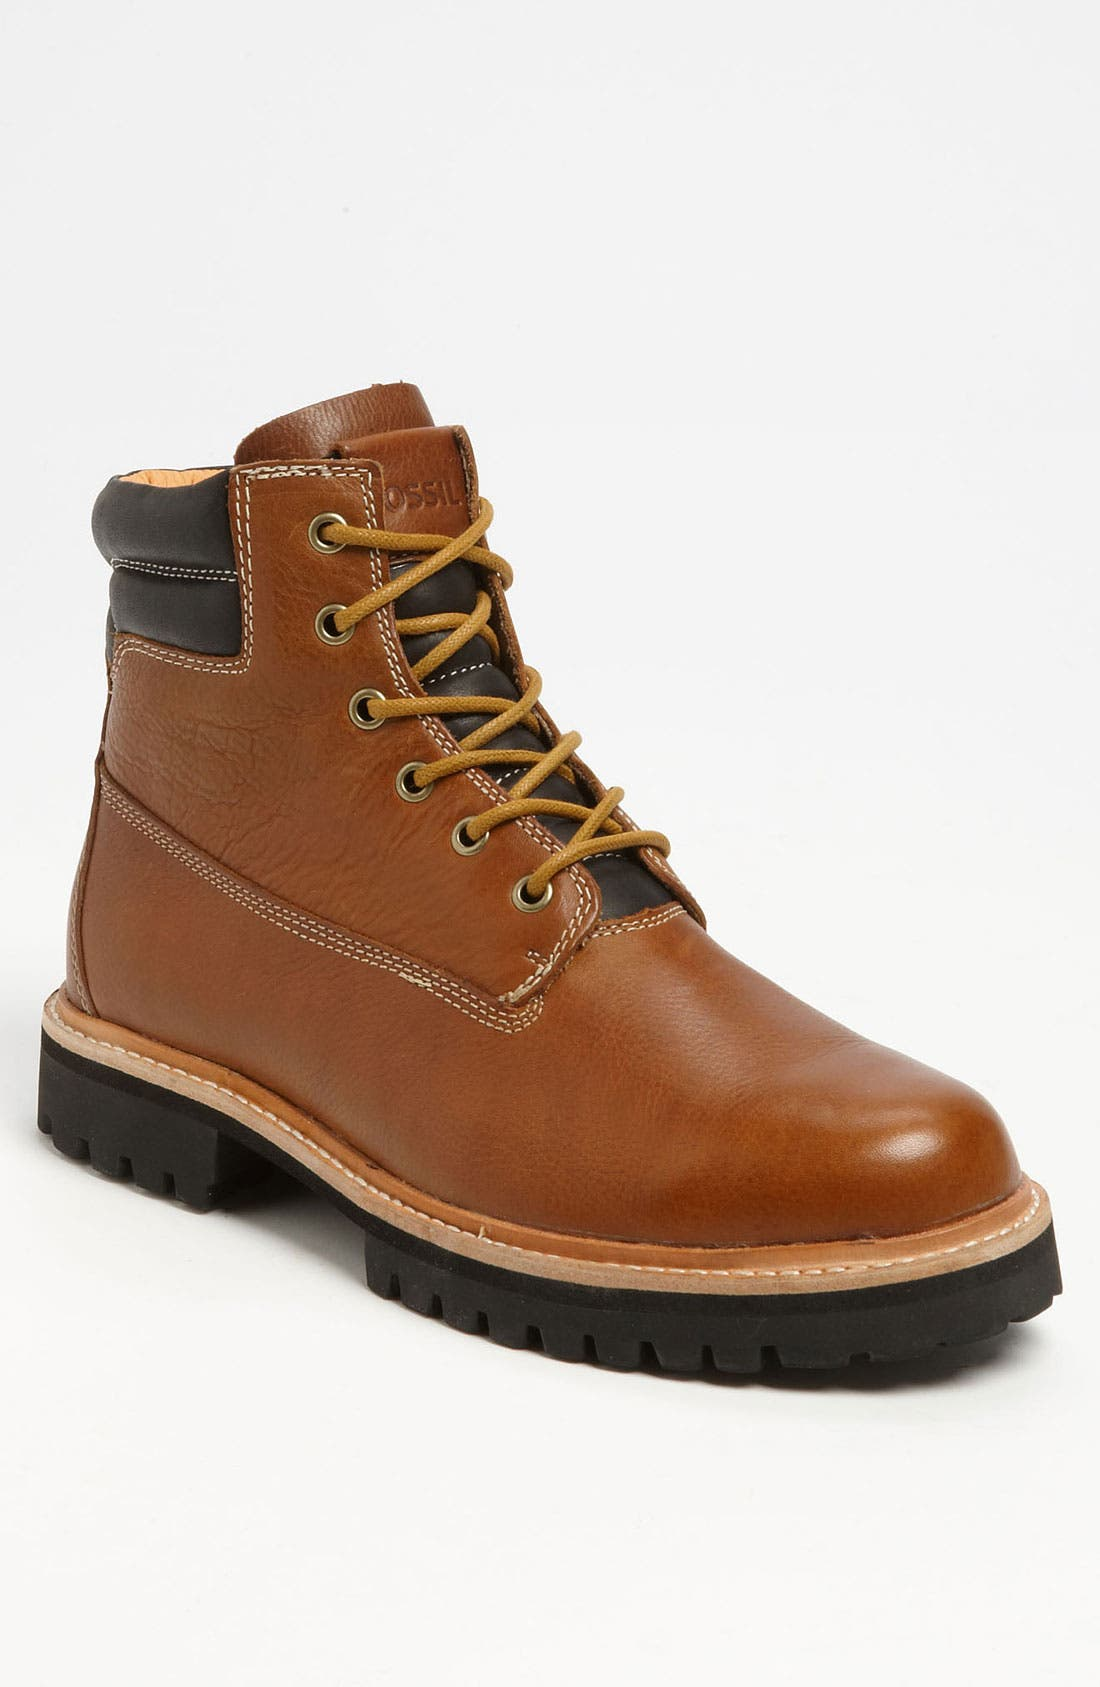 Alternate Image 1 Selected - Fossil 'Portsmouth' Boot